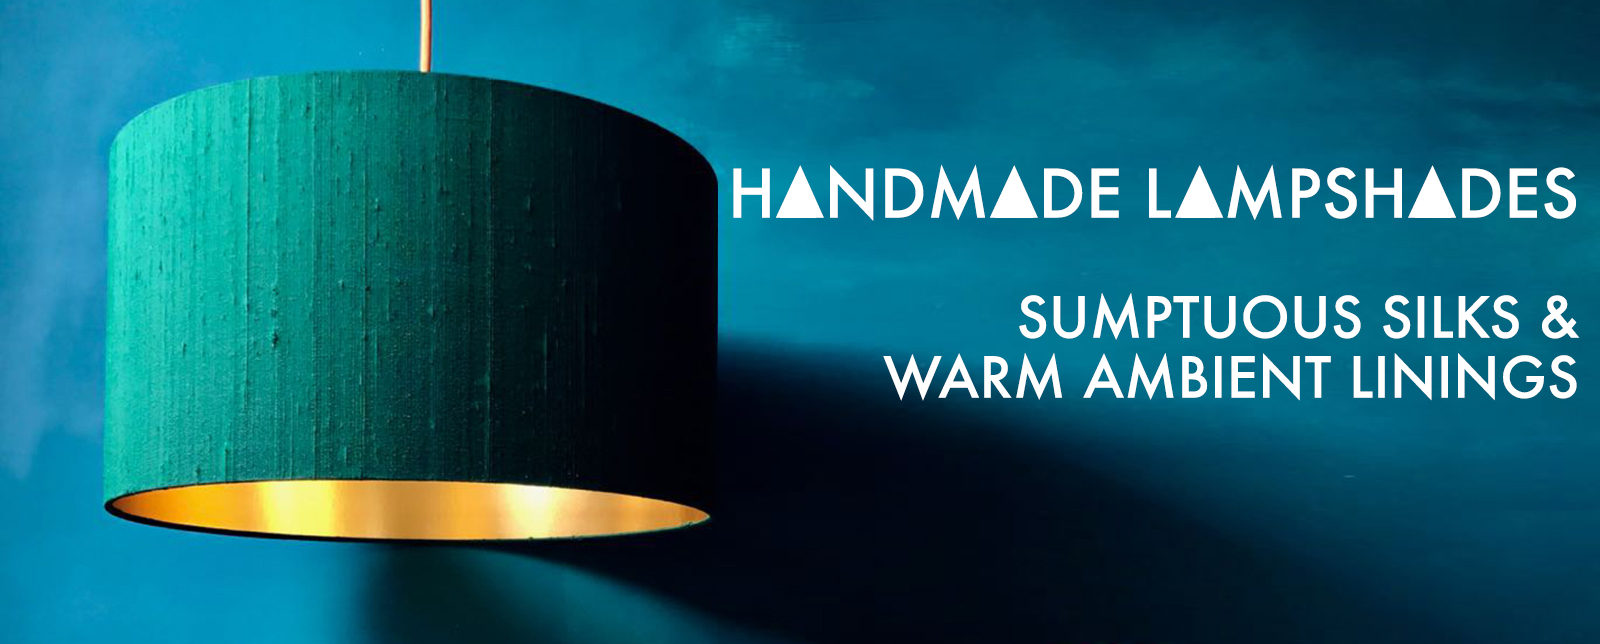 bespoke made to order handmade lampshades by Love Frankie